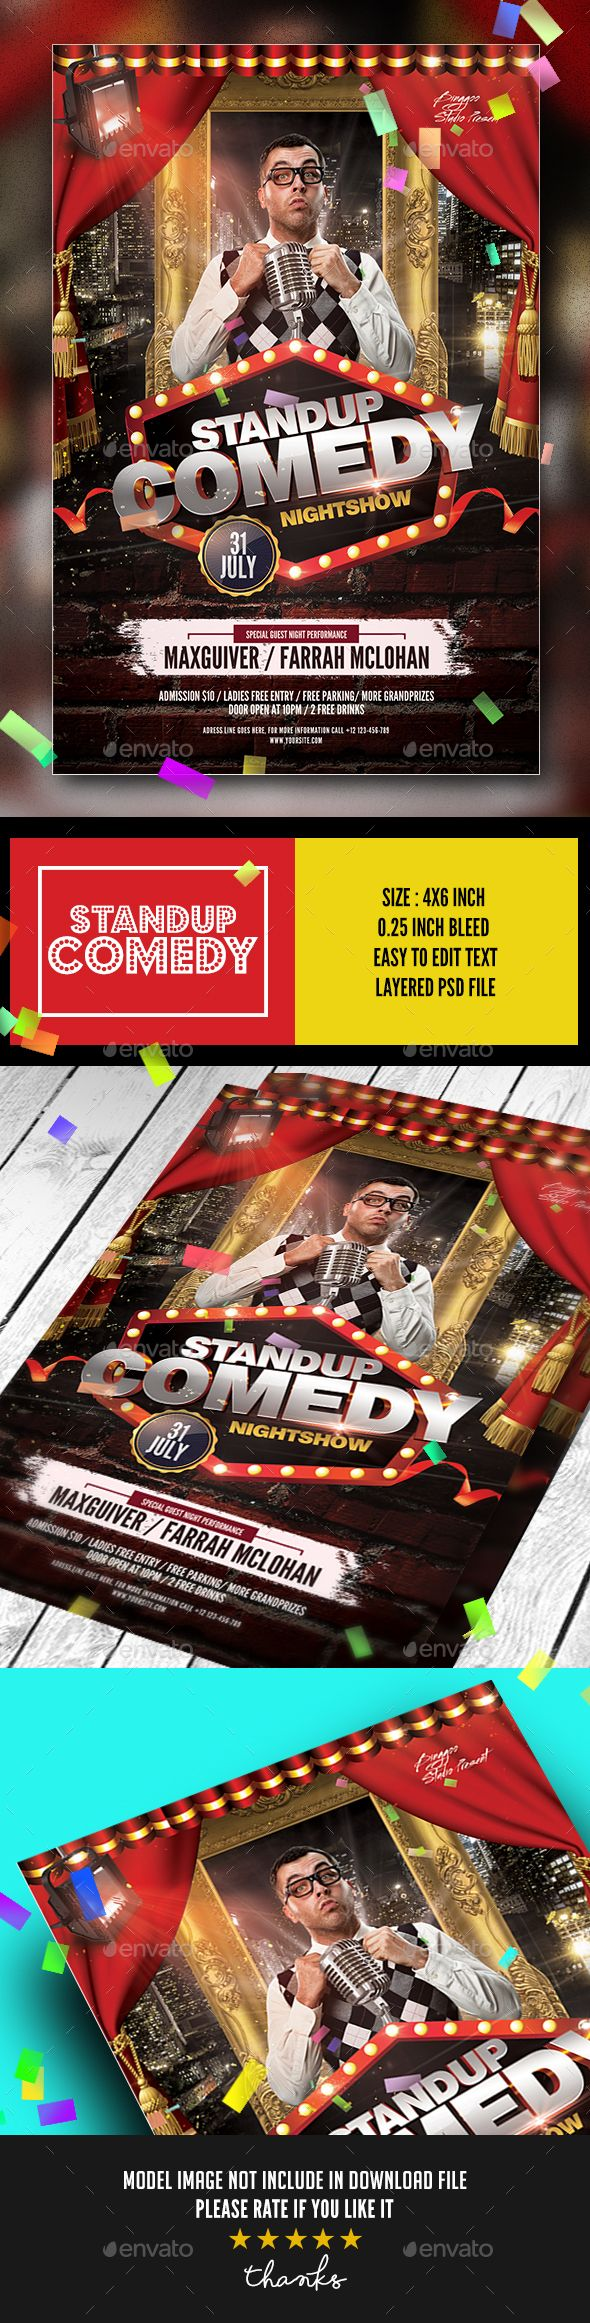 Stand Up Comedy Night Show Flyer Template PSD